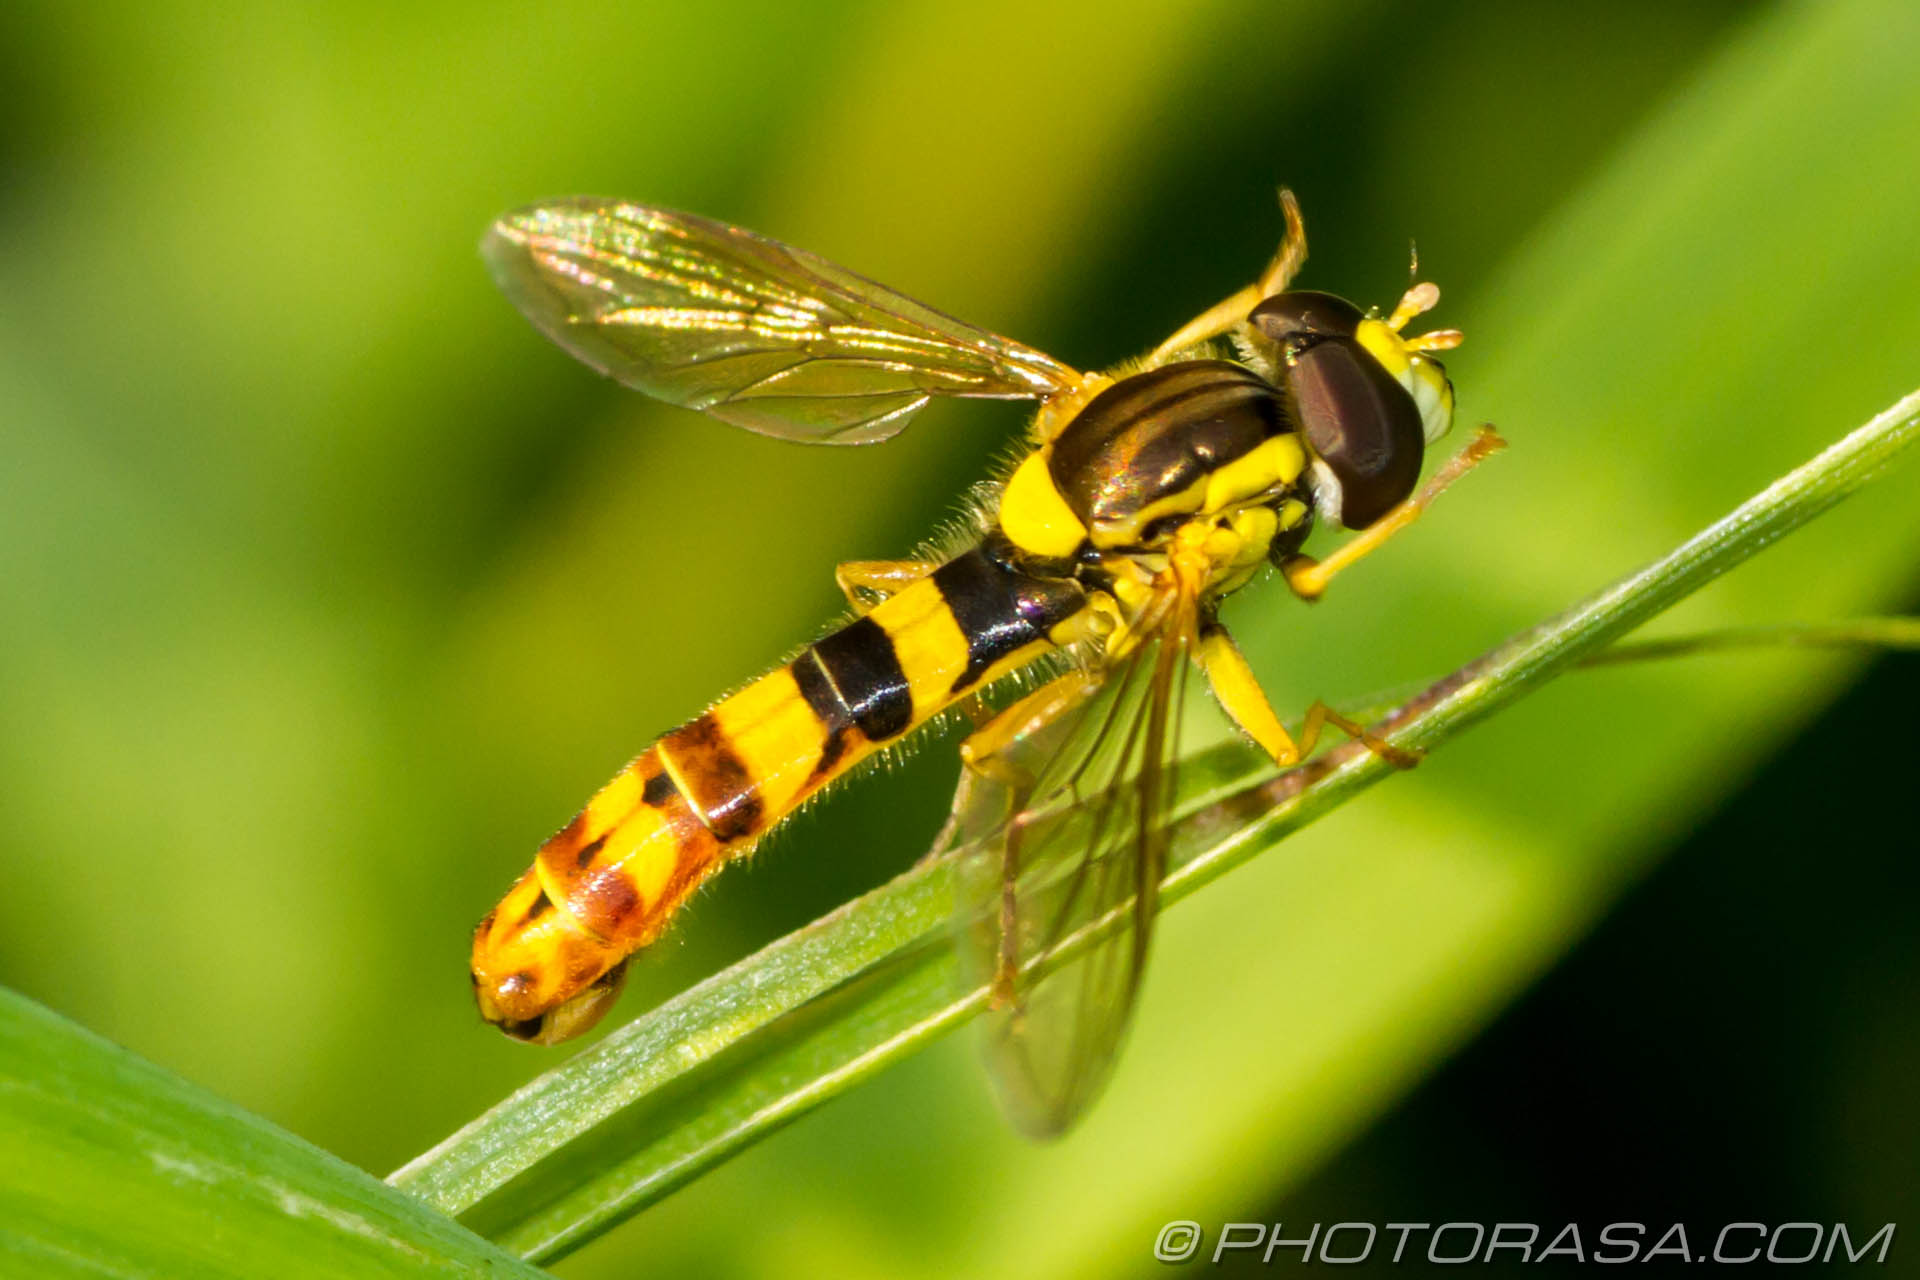 http://photorasa.com/animals/insects/hoverflies/attachment/male-thin-abdomen-hoverfly/